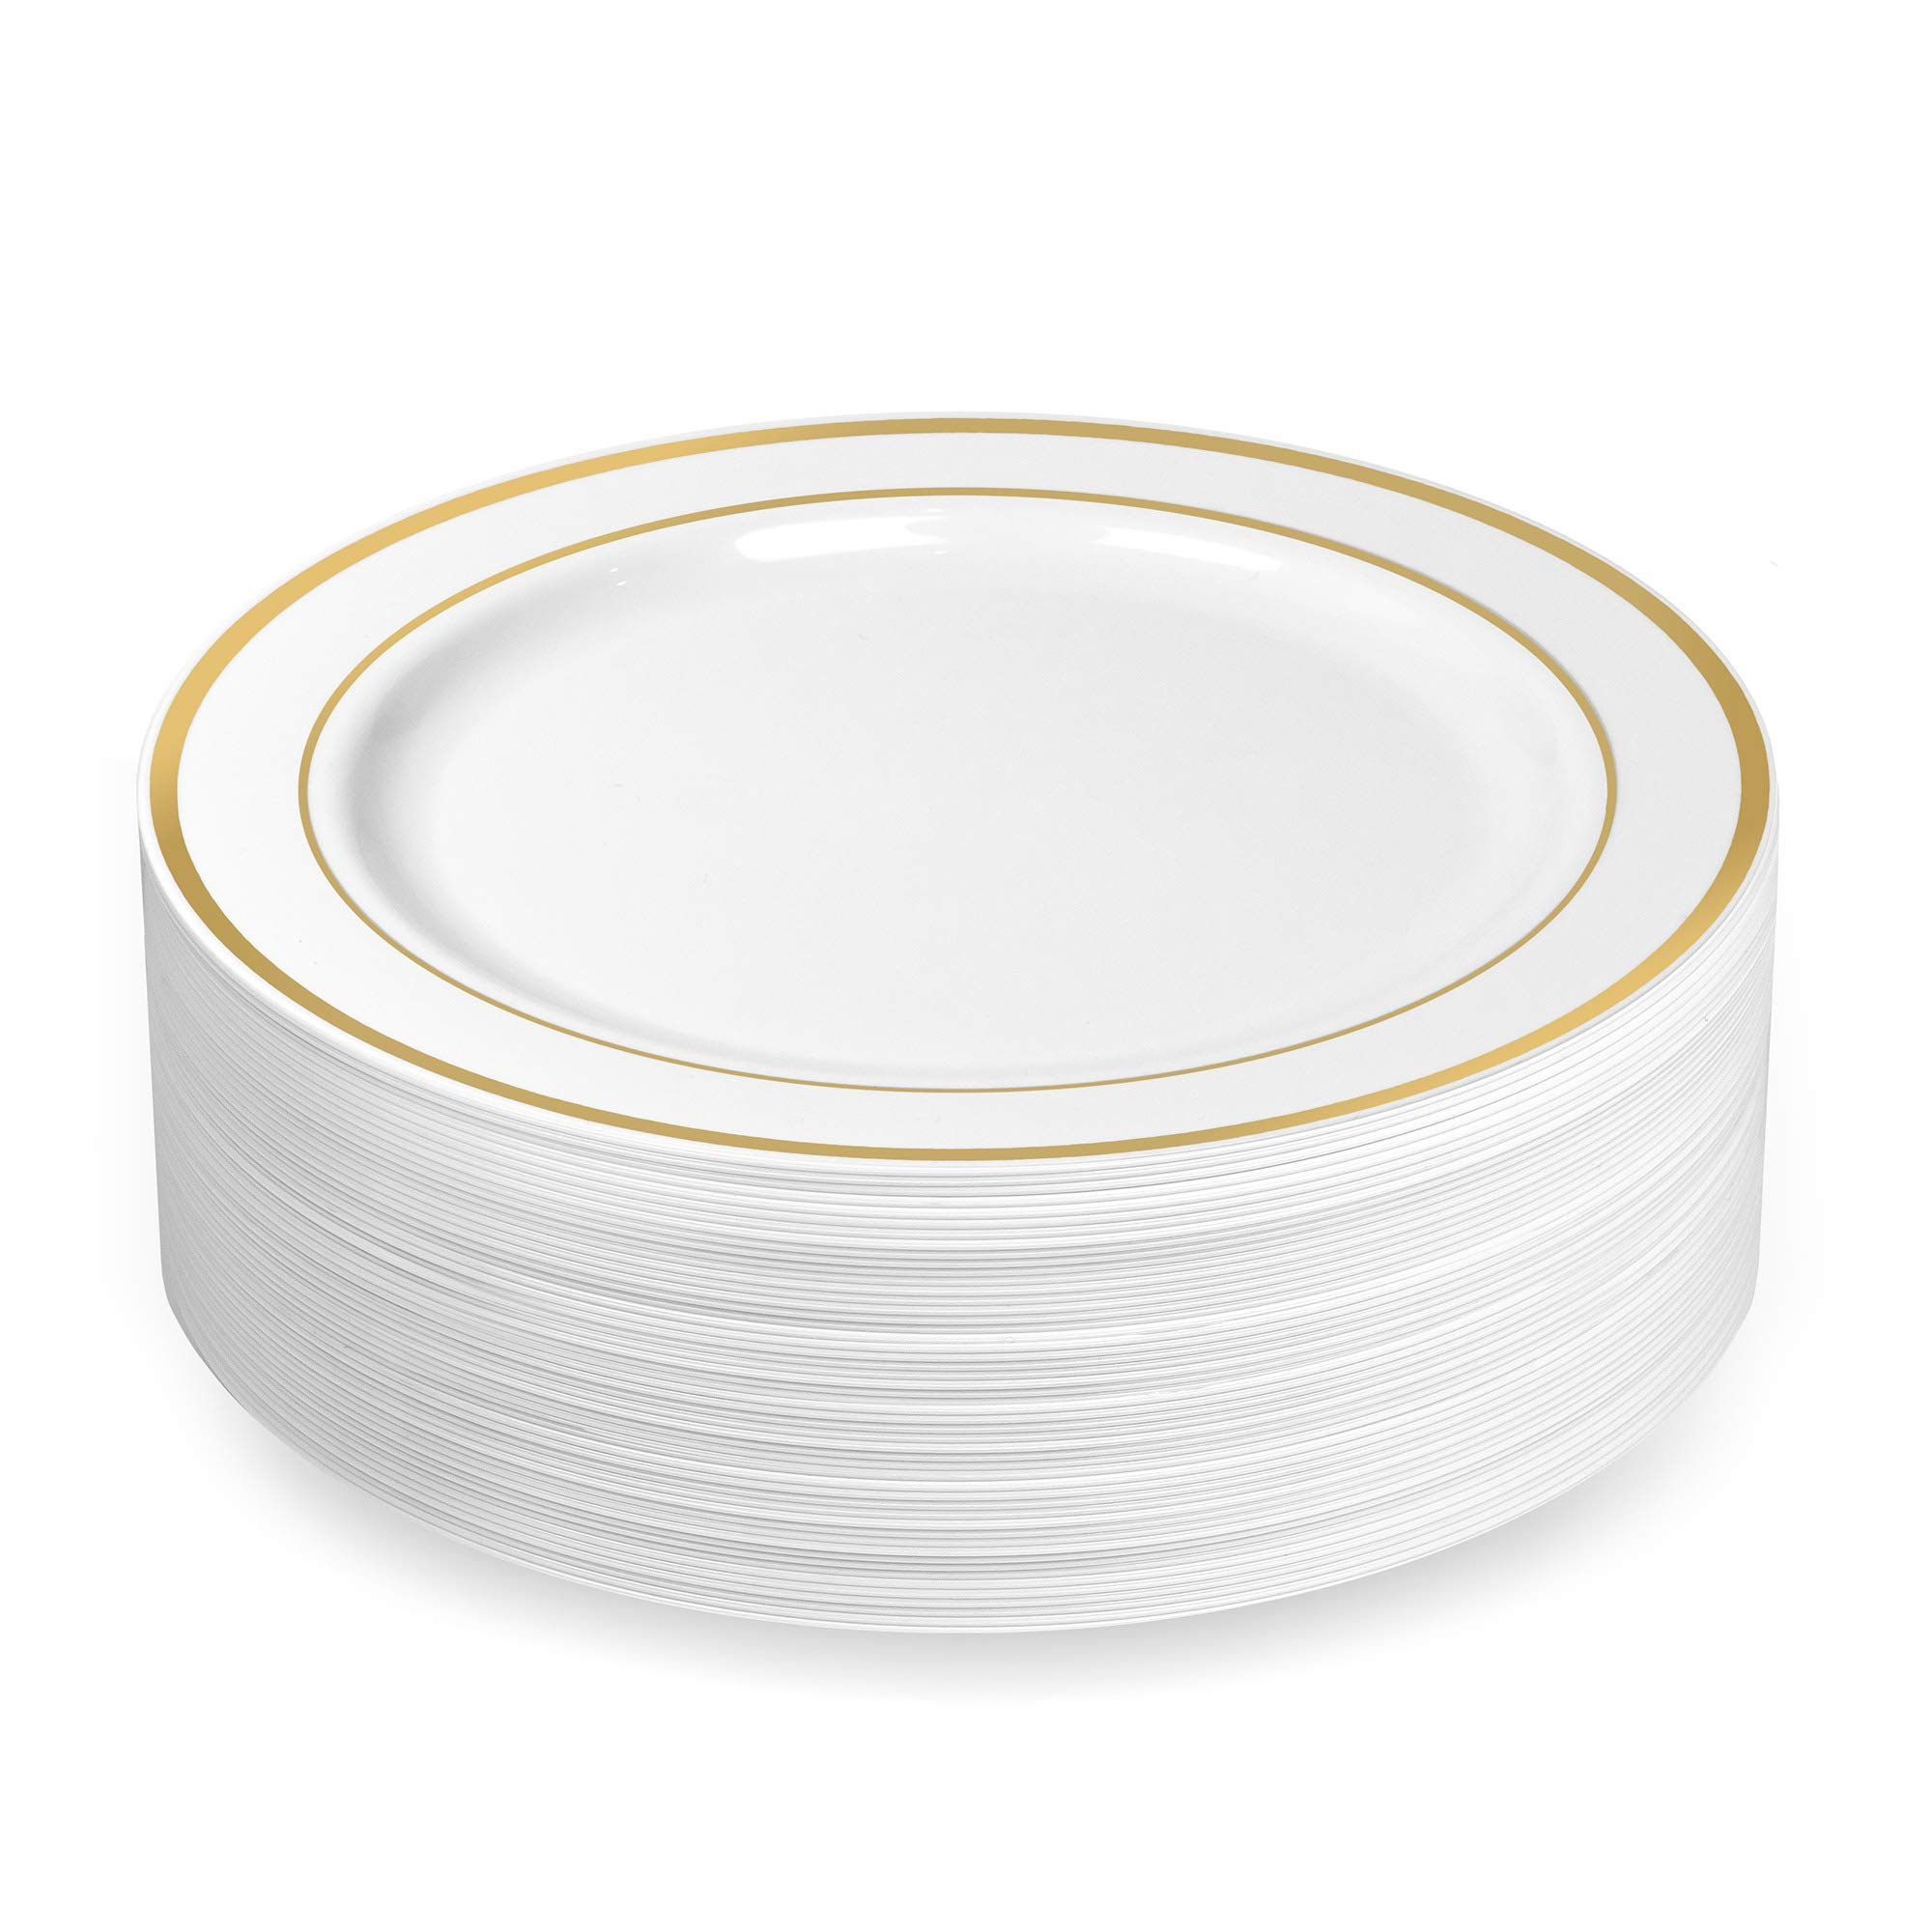 50 Plastic Disposable Dinner Plates | 10.25 inches White with Gold Rim Real China Look | Ideal for Weddings, Parties, Catering | Heavy Duty & Non Toxic (50-Pack) by BloominGoods